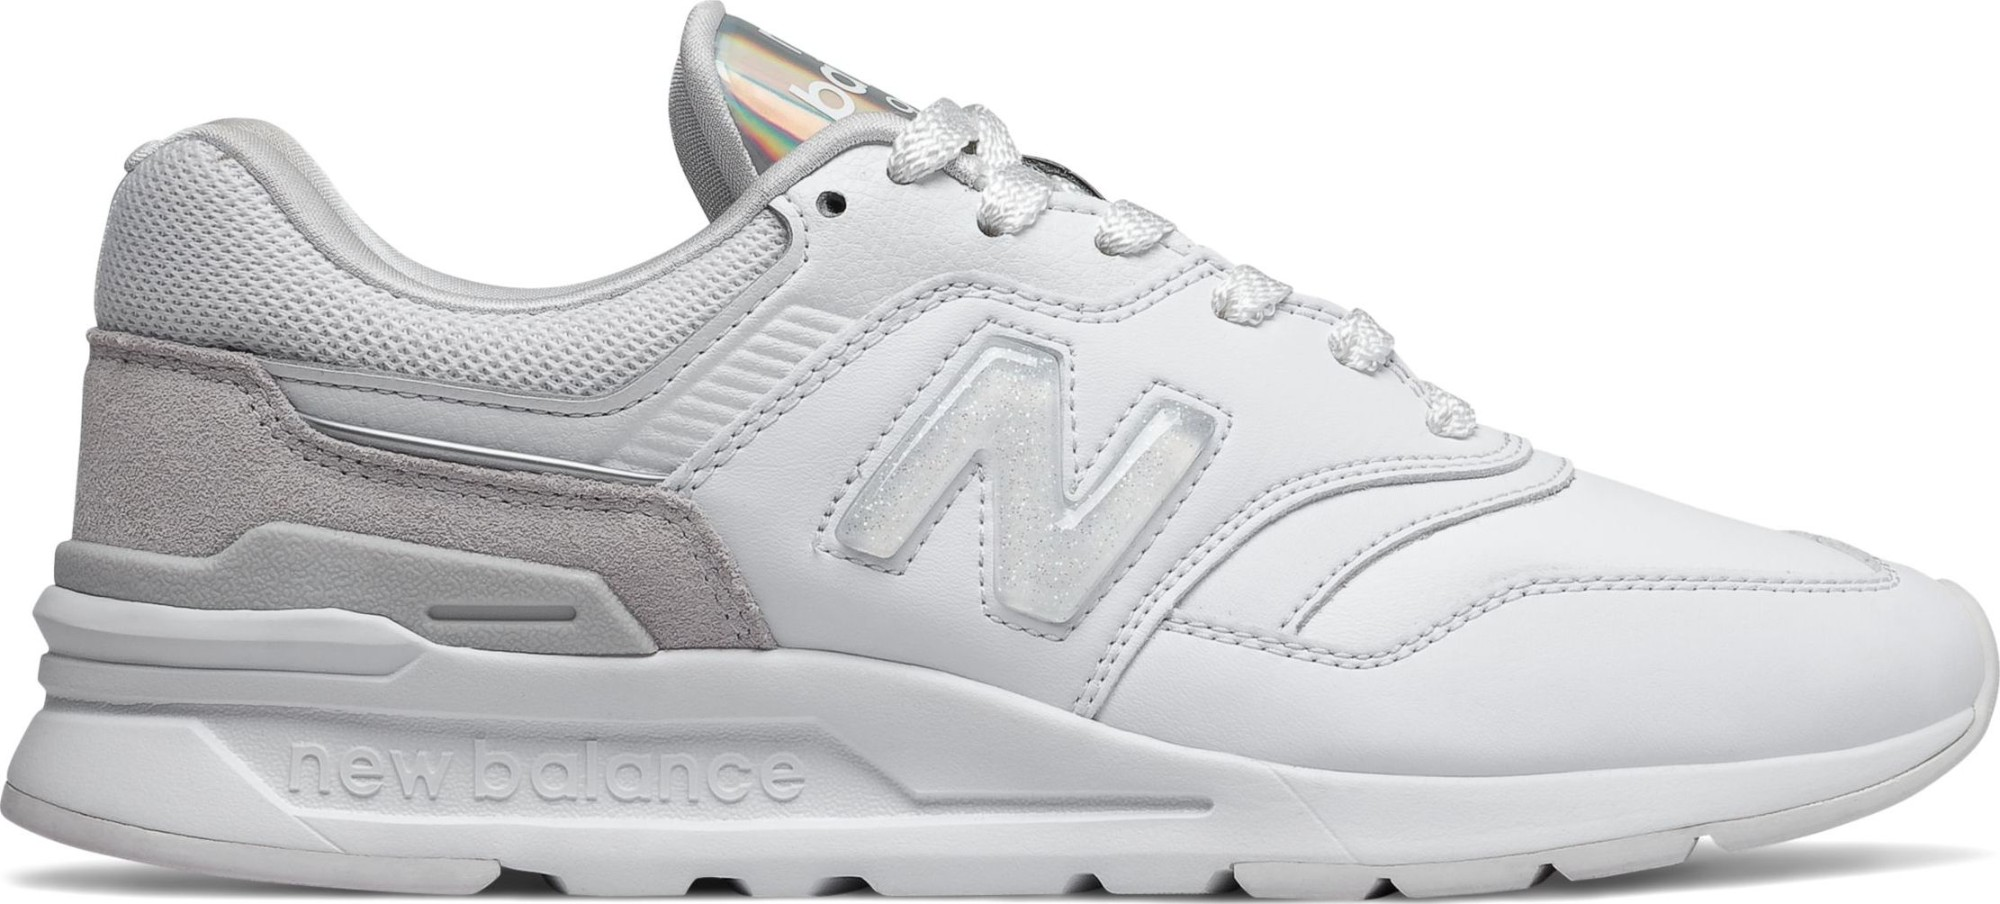 New Balance CW997 White HBO 40